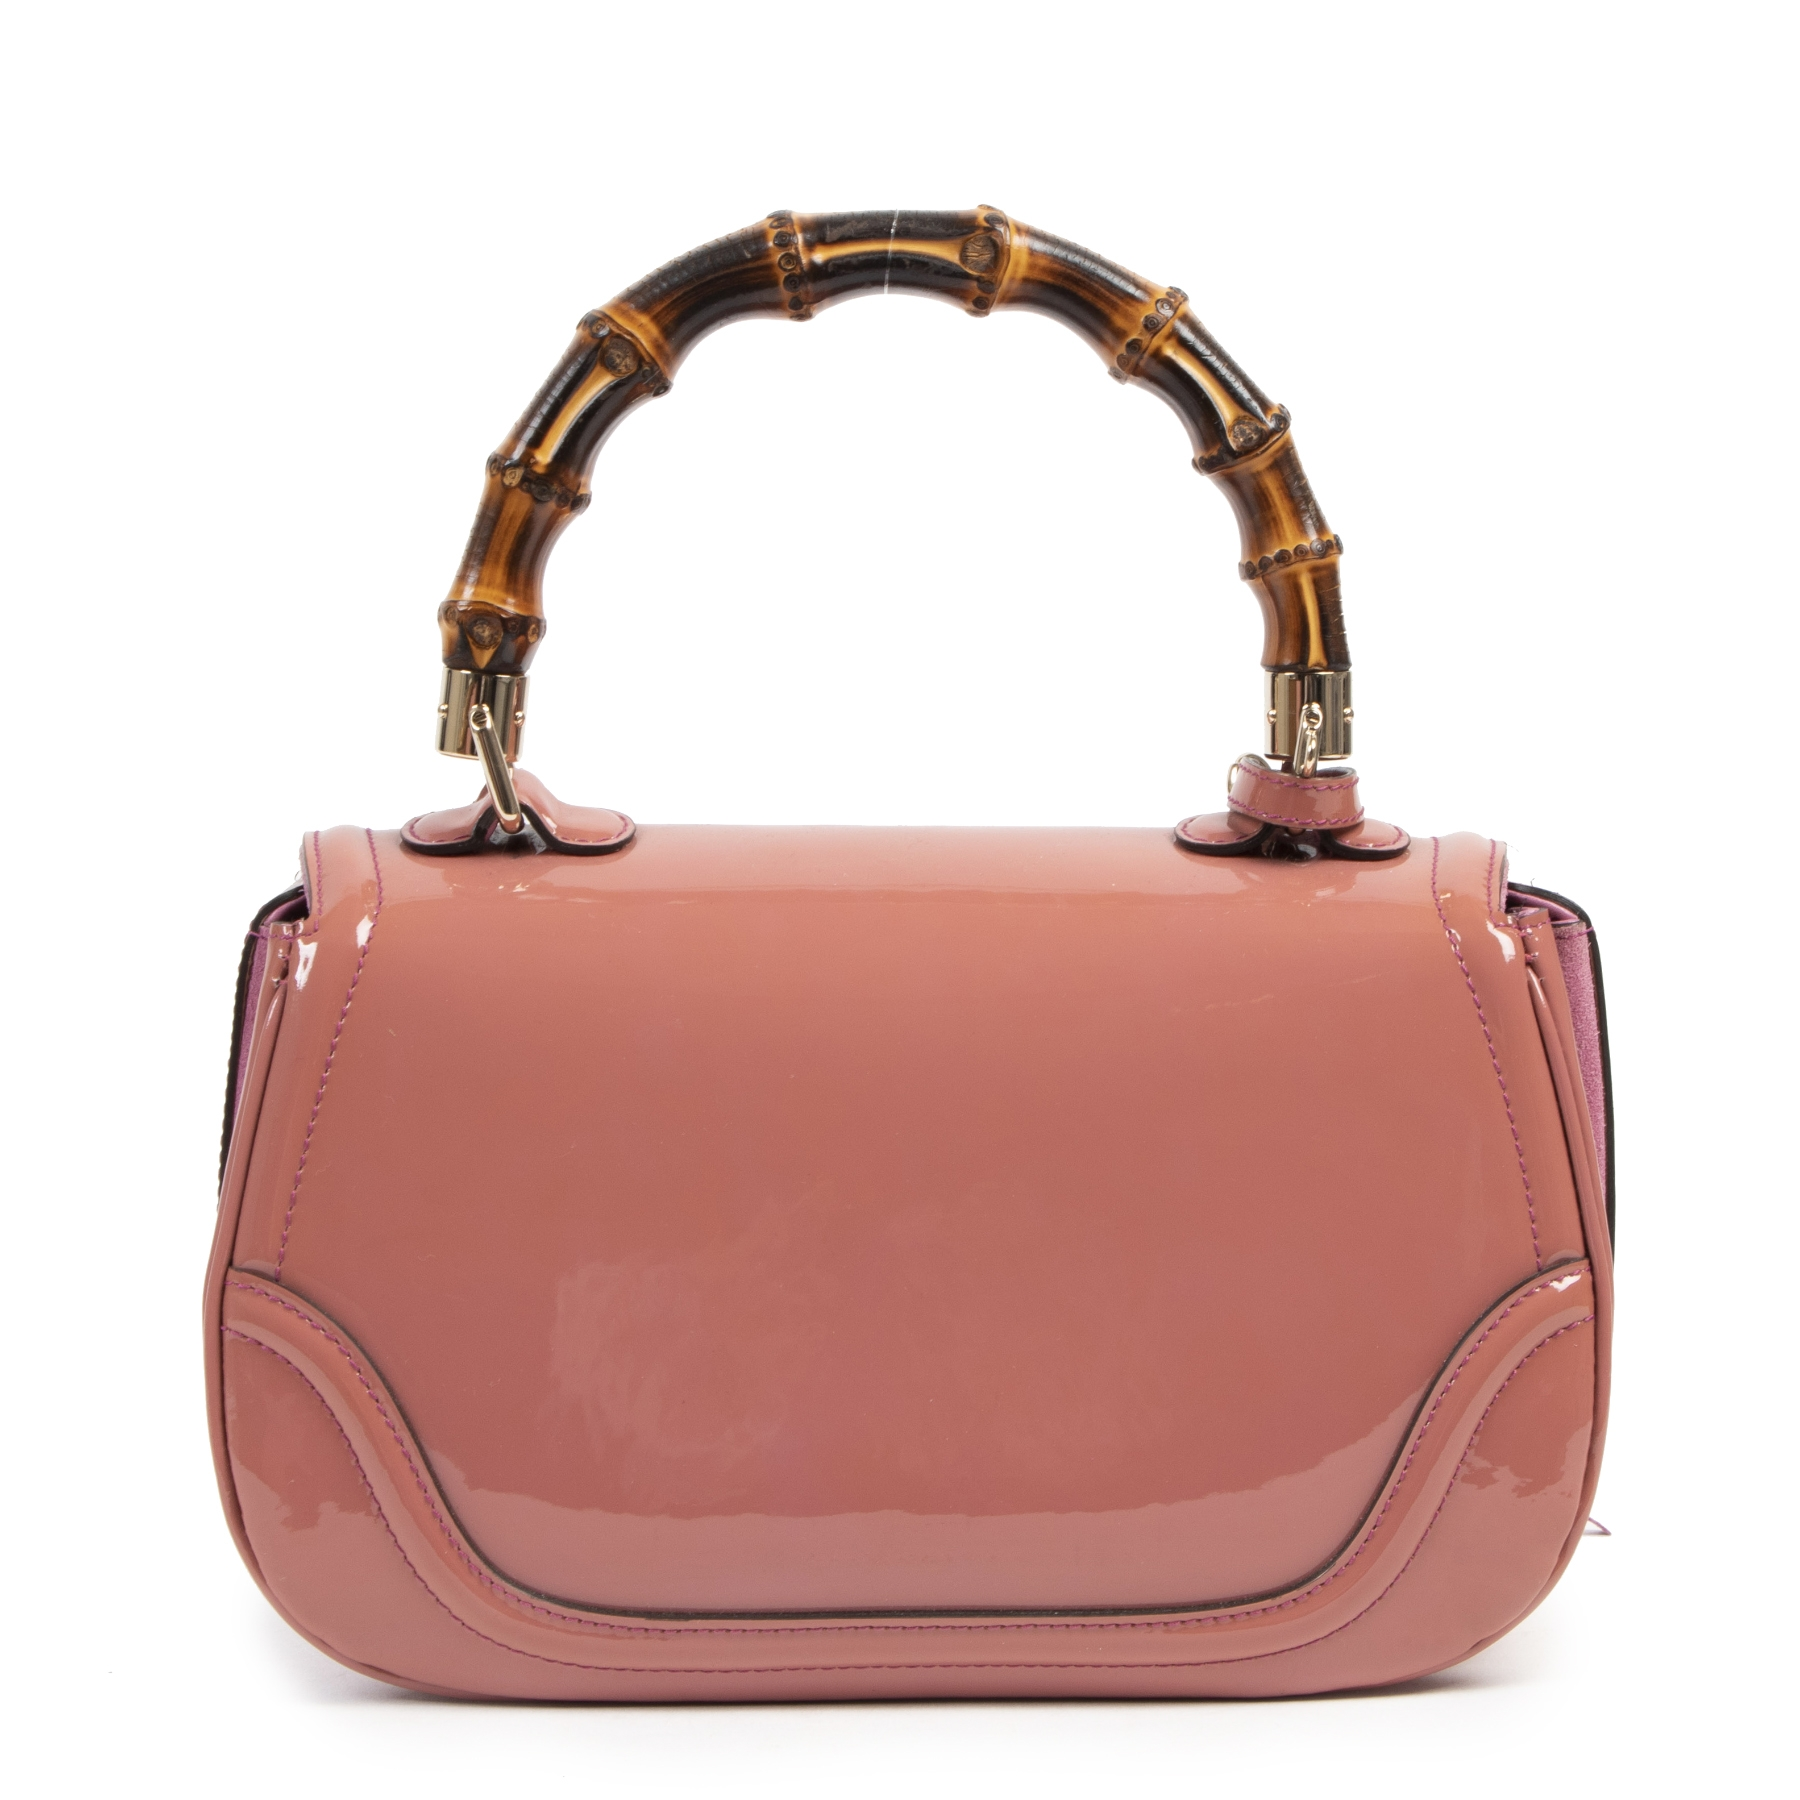 Authentic secondhand Gucci Pink Patent Leather Bamboo Top Handle Bag fashion luxury vintage webshop safe secure online shopping